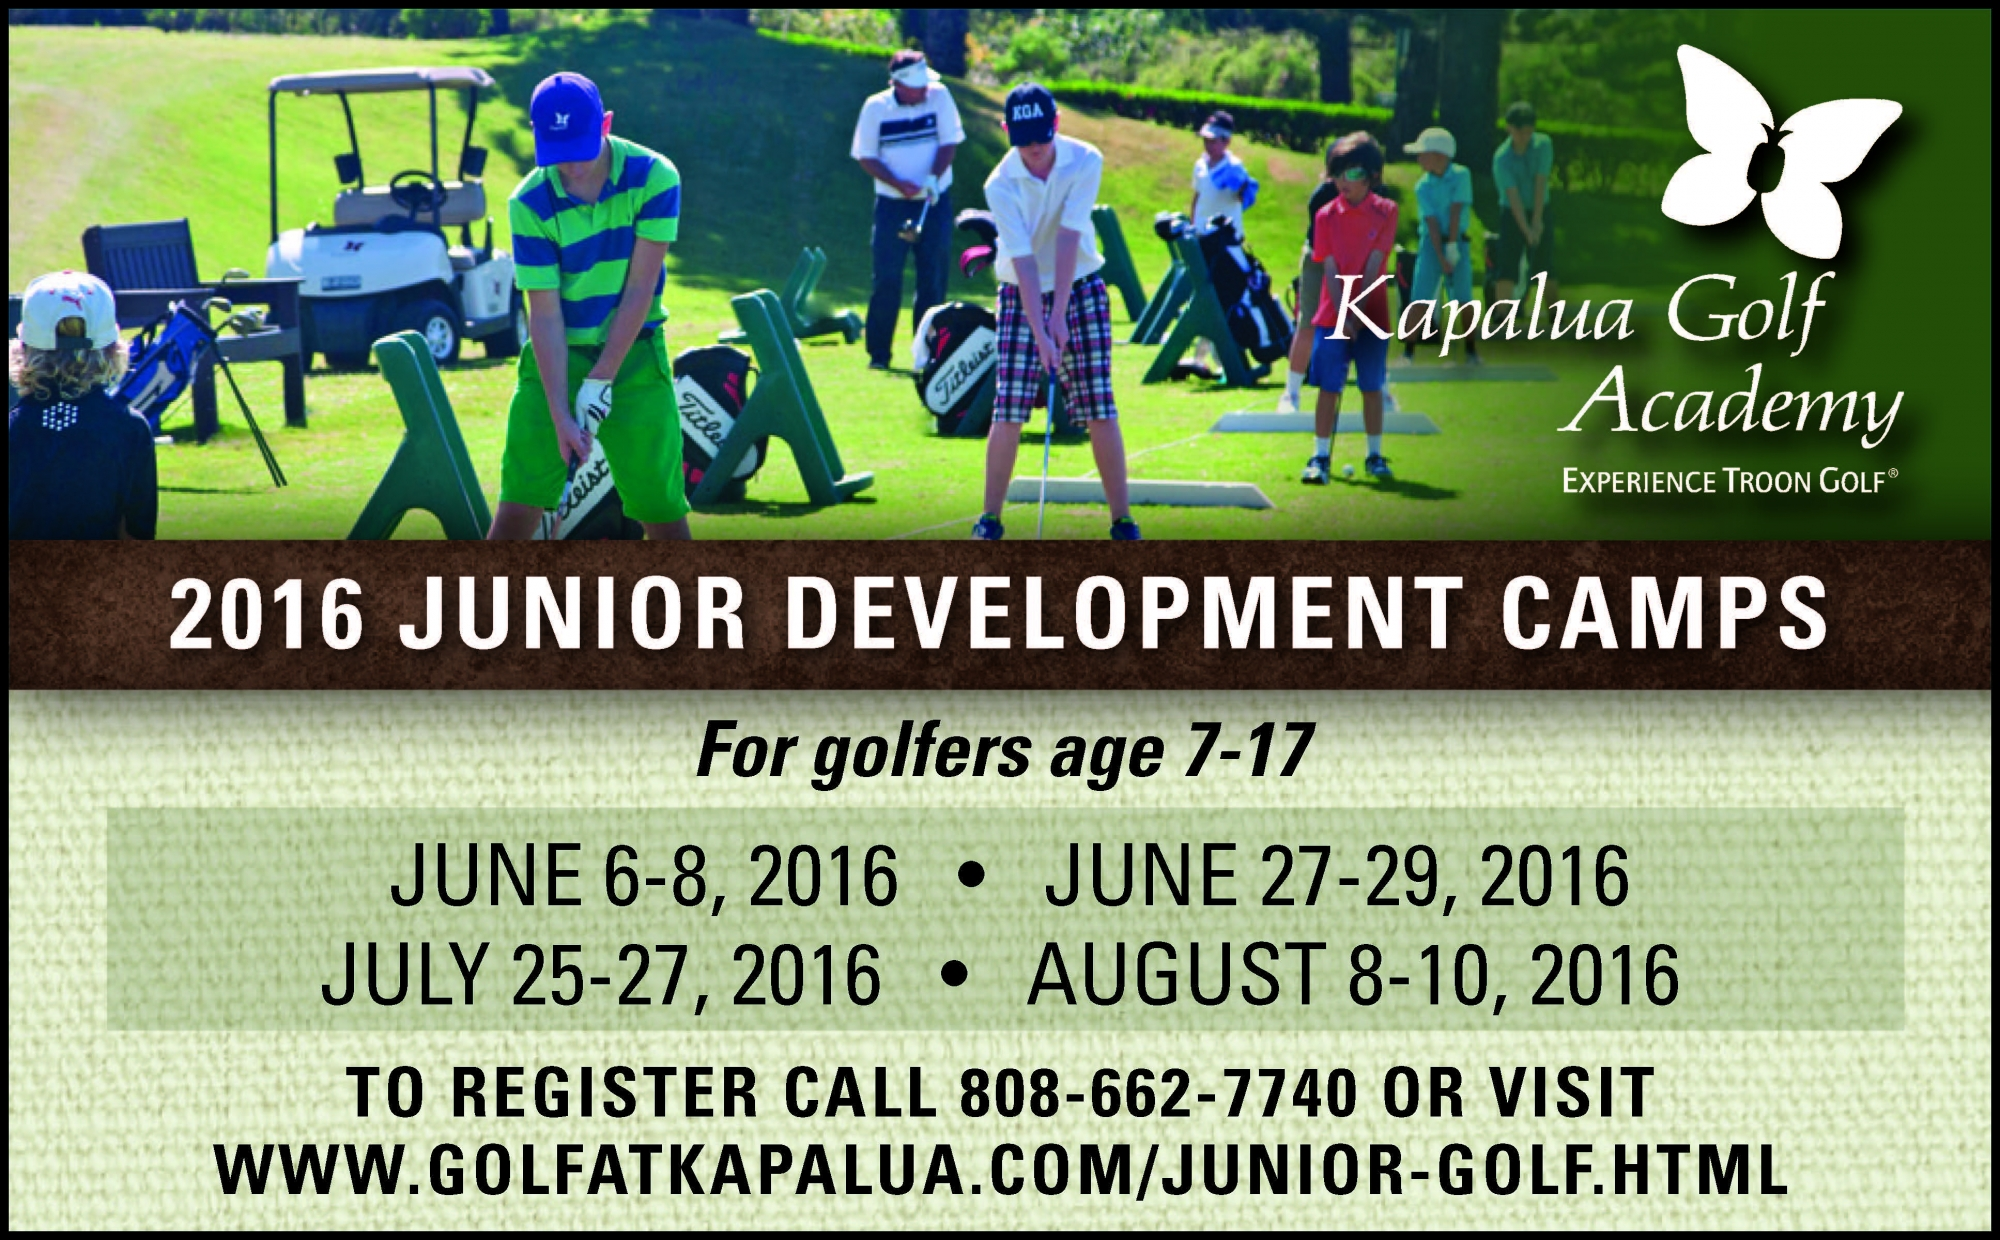 2016 Junior Development Camps